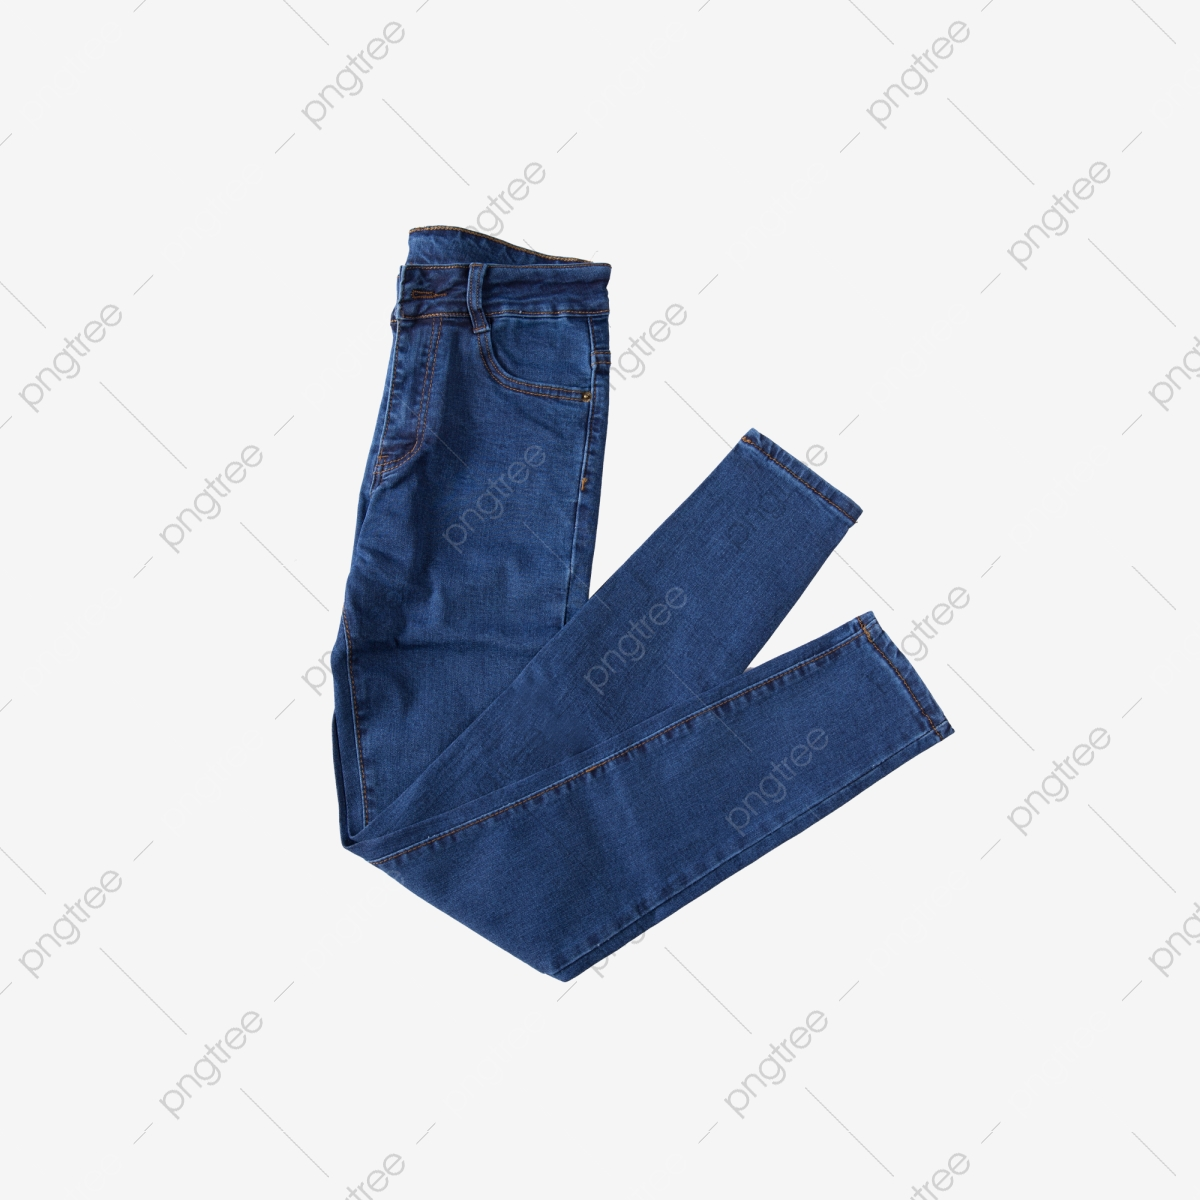 Jeans Png Images Vector And Psd Files Free Download On Pngtree